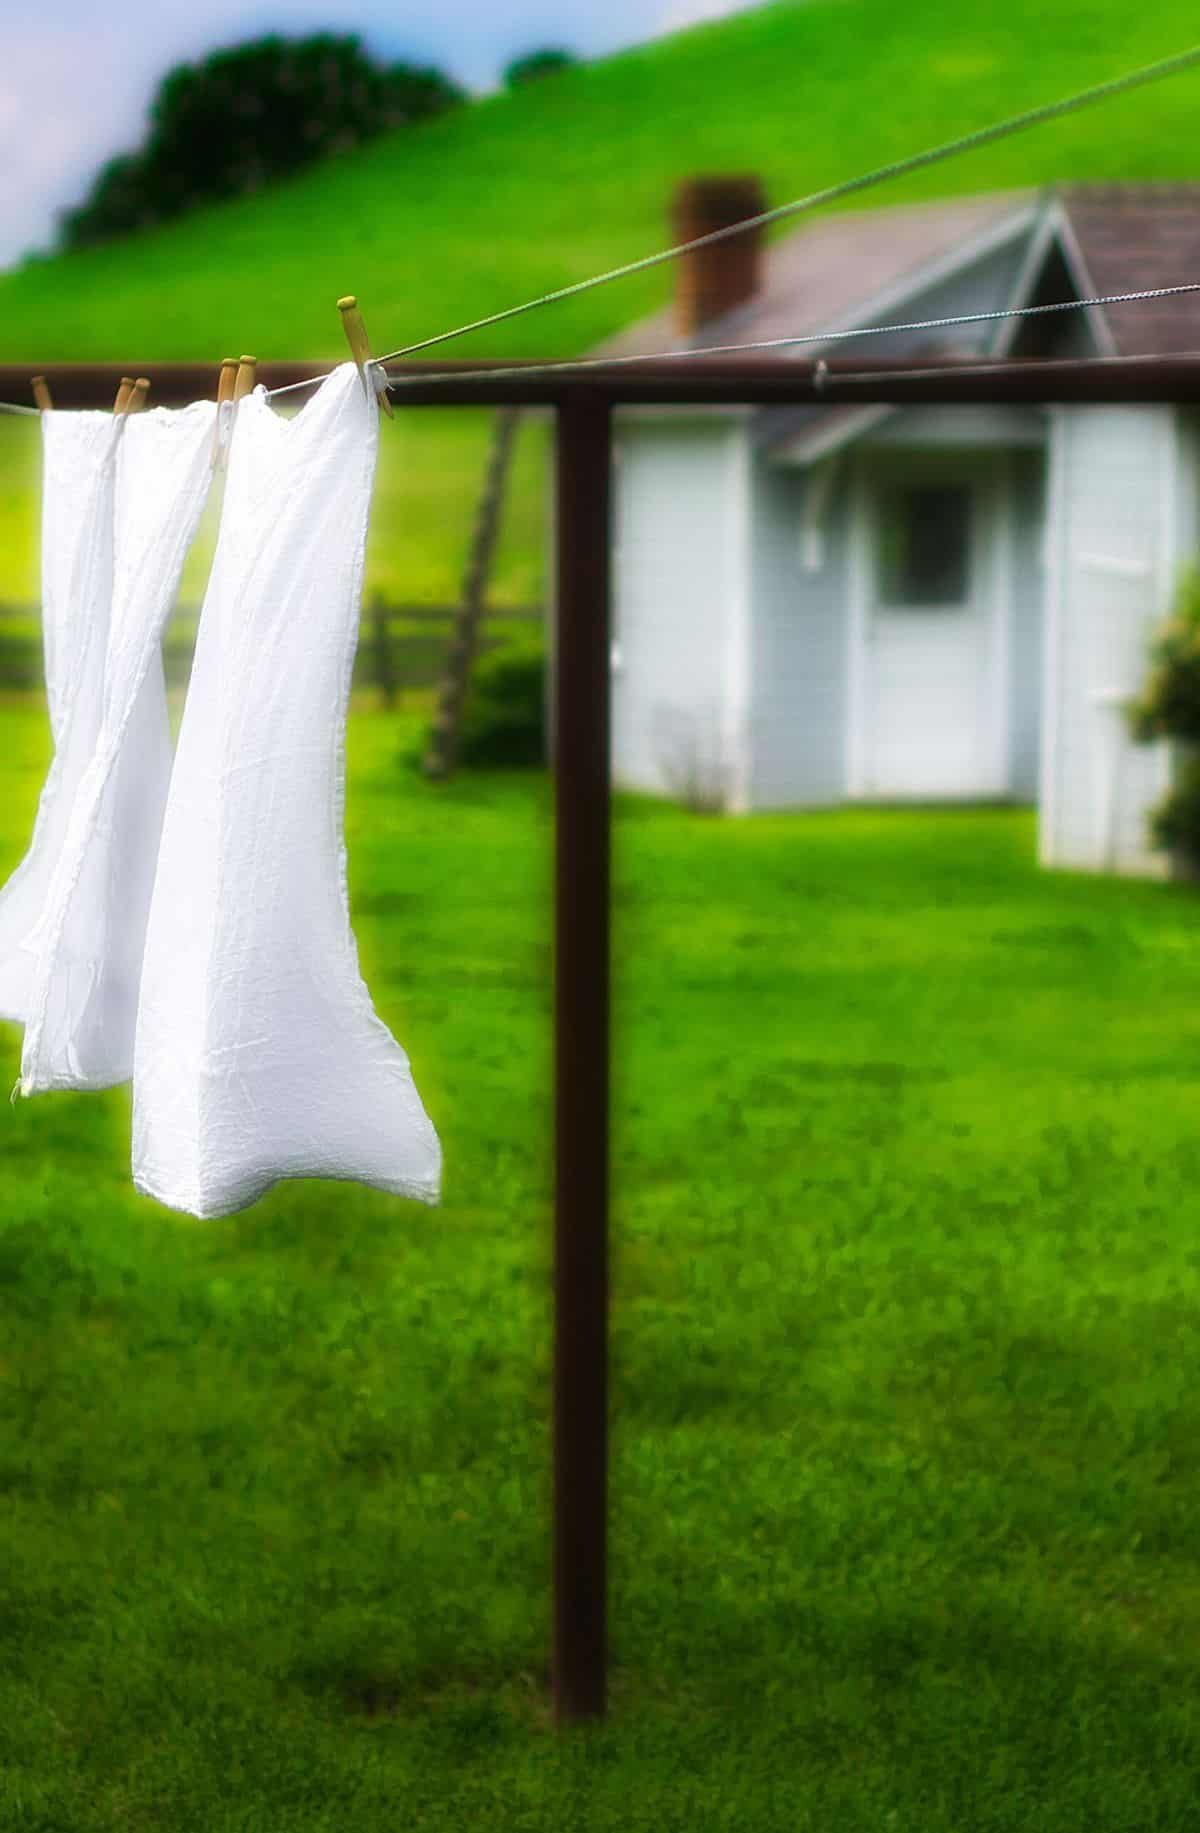 clothes line with white sheets